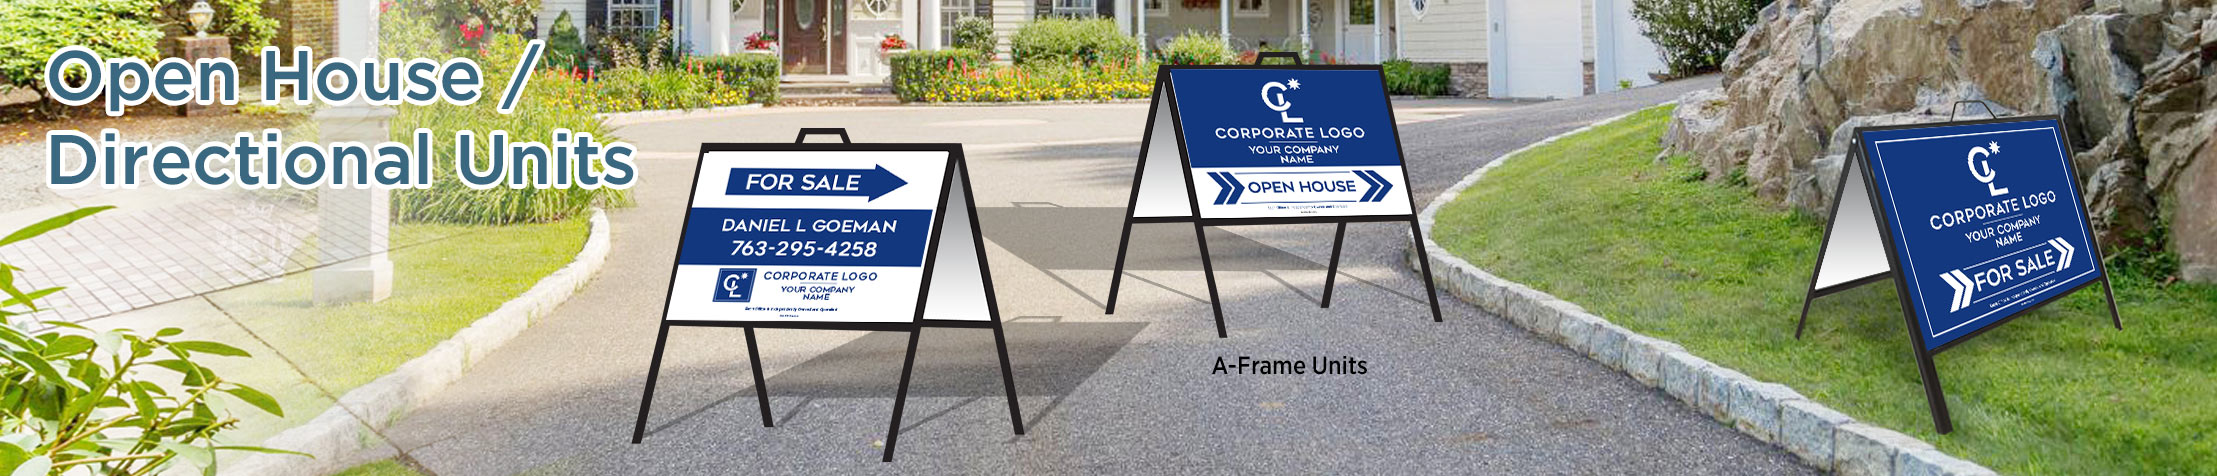 Coldwell Banker Real Estate Arrow Shaped Signs - Coldwell Banker directional real estate signs | BestPrintBuy.com